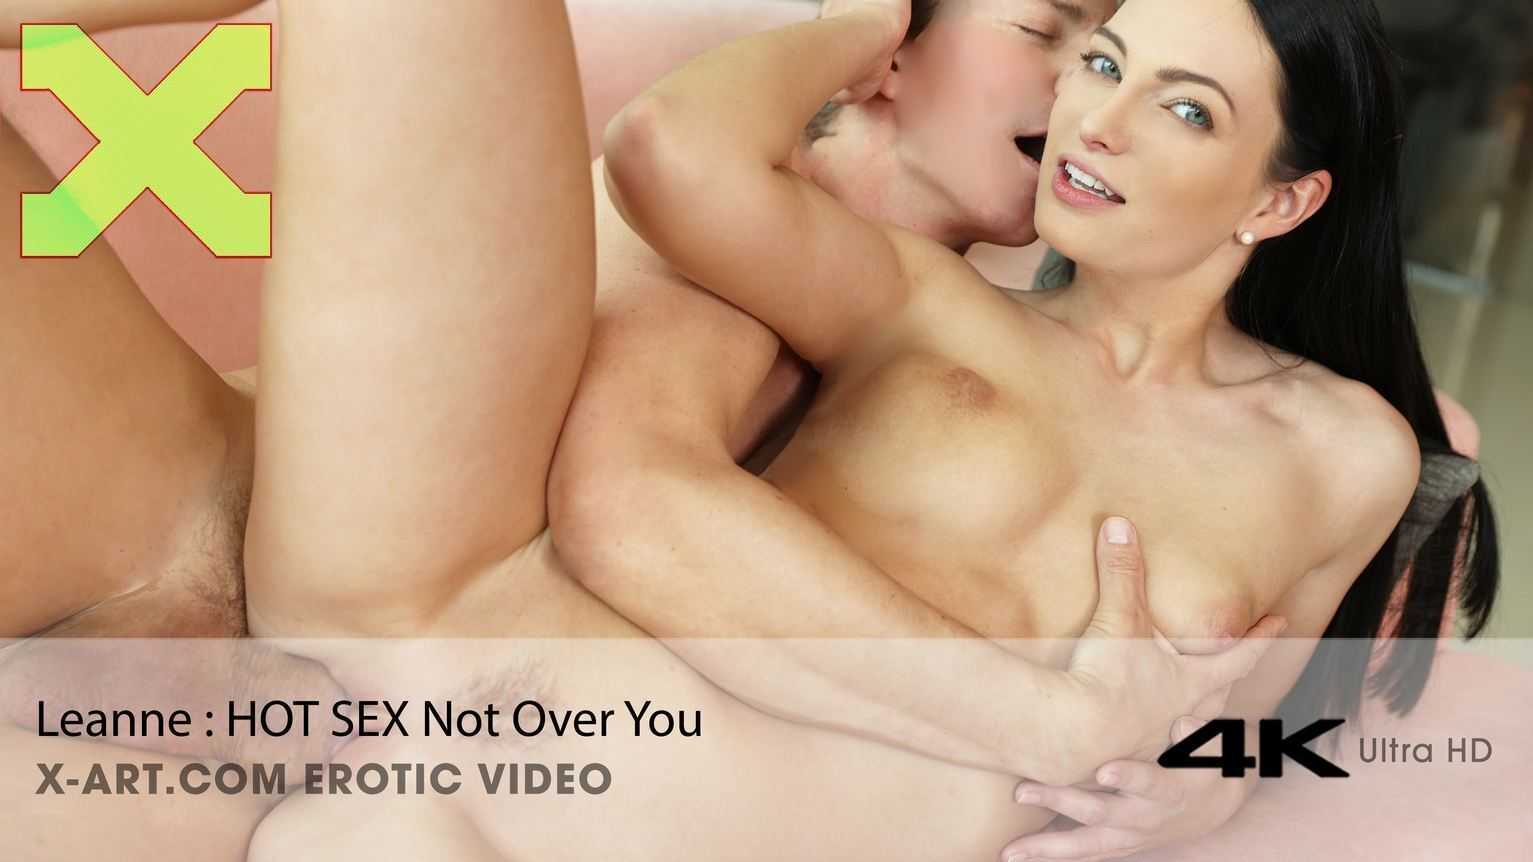 Leanne & Ricky Hot SEX Not Over You – Leanne